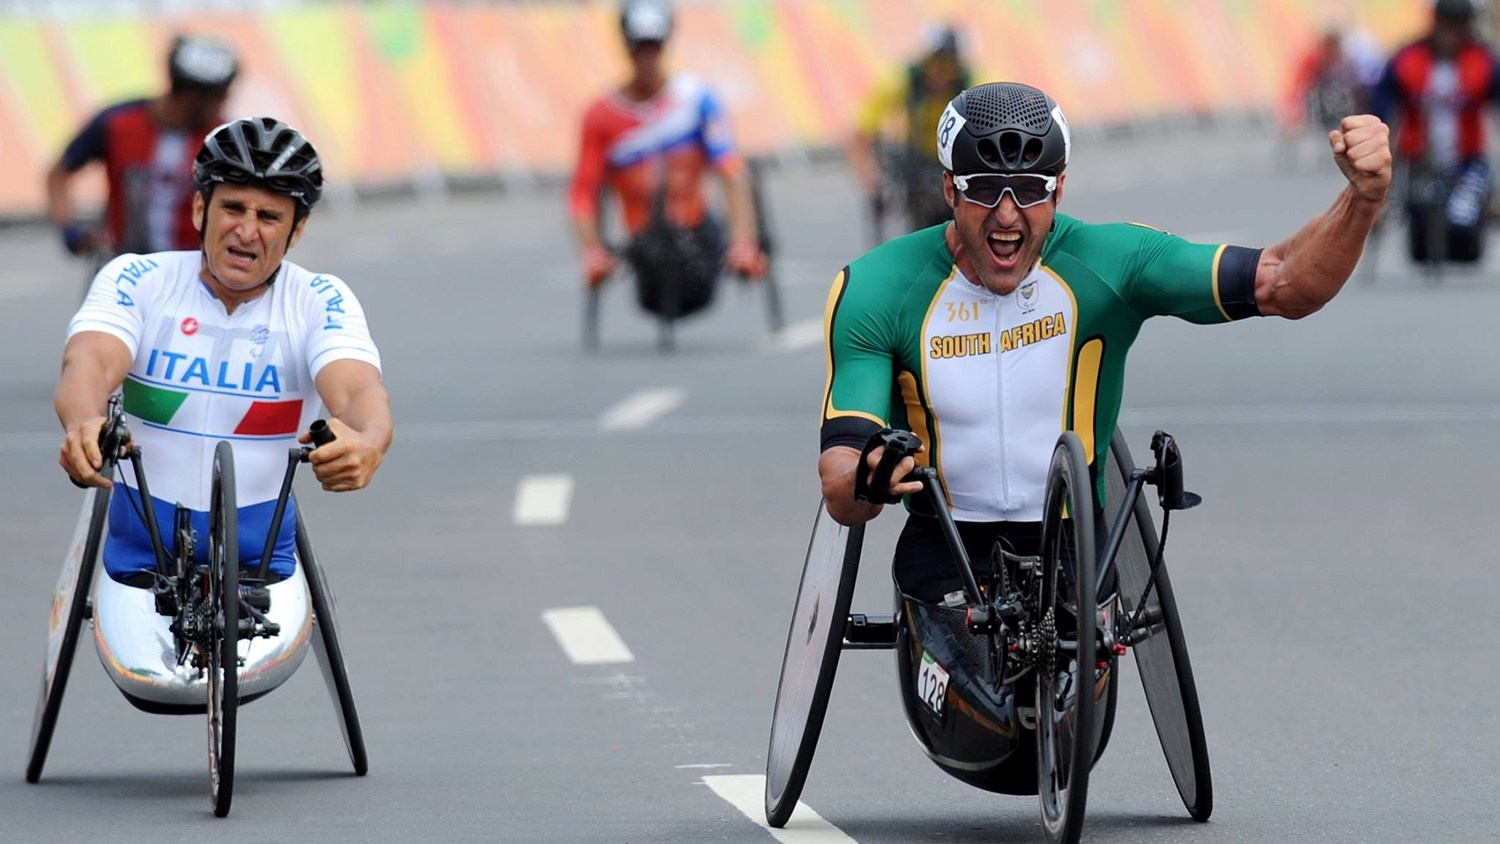 South African Paralympic legend, Ernst van Dyk, celebrated the ultimate victory when he claimed his second Paralympic gold medal of his illustrious career during the Men's H5 hand cycling race at the 2016 Rio Paralympic Games in Brazil last week . © Jean-Baptiste Benavent /    uci.ch